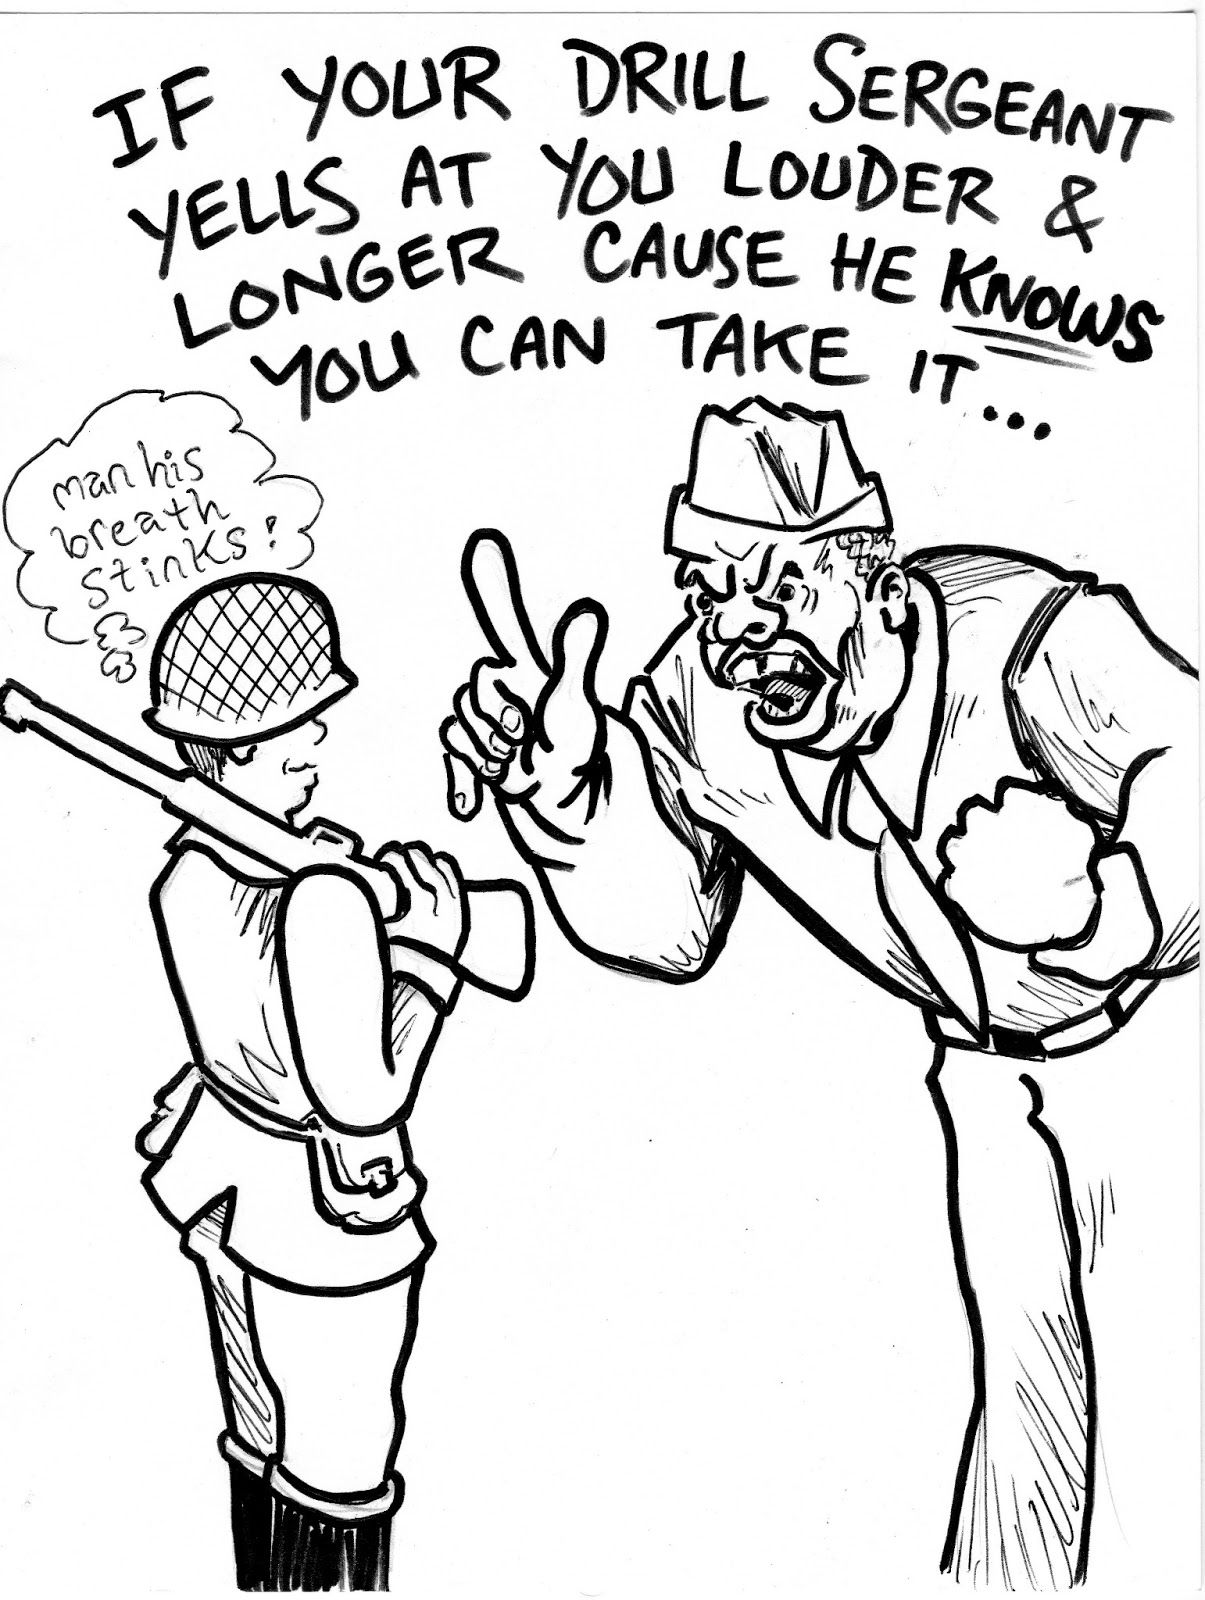 Marine Boot Camp Cartoons Comix Cartoons For My Nephew The Marine When He Was In Boot Camp Military Quotes Boot Camp Quotes Motivational Military Quotes